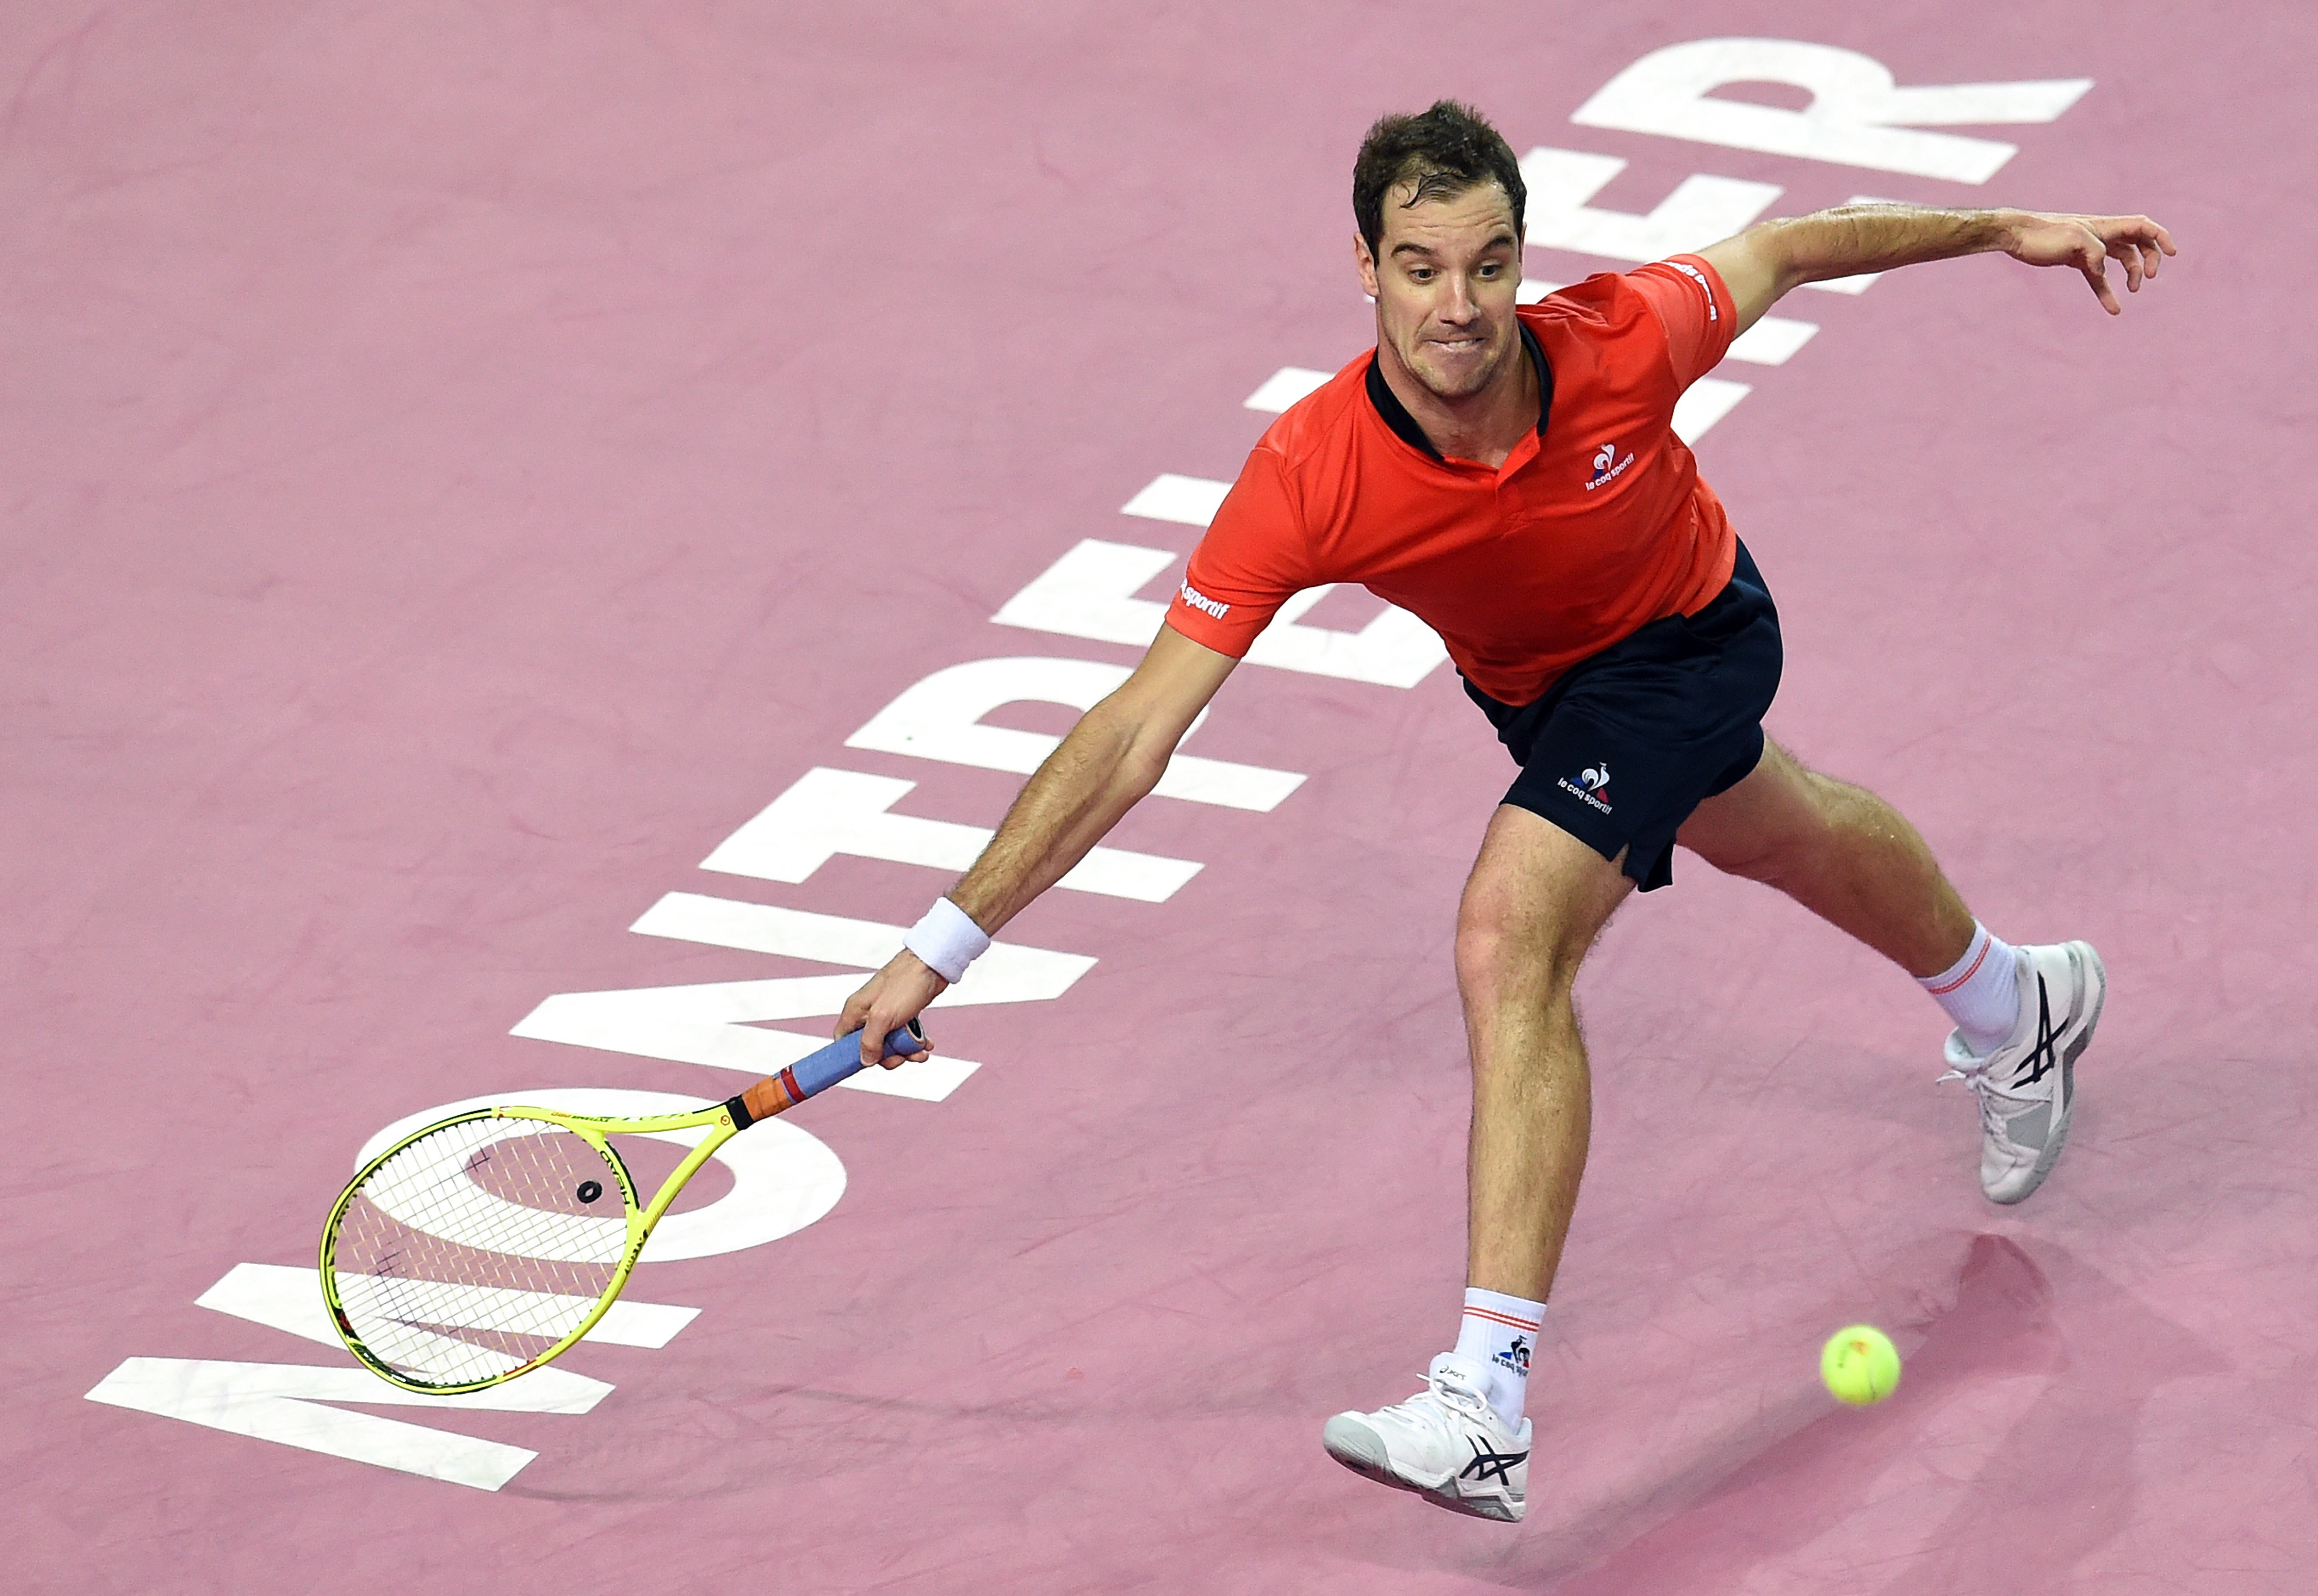 Richard-Gasquet-Montpellier16